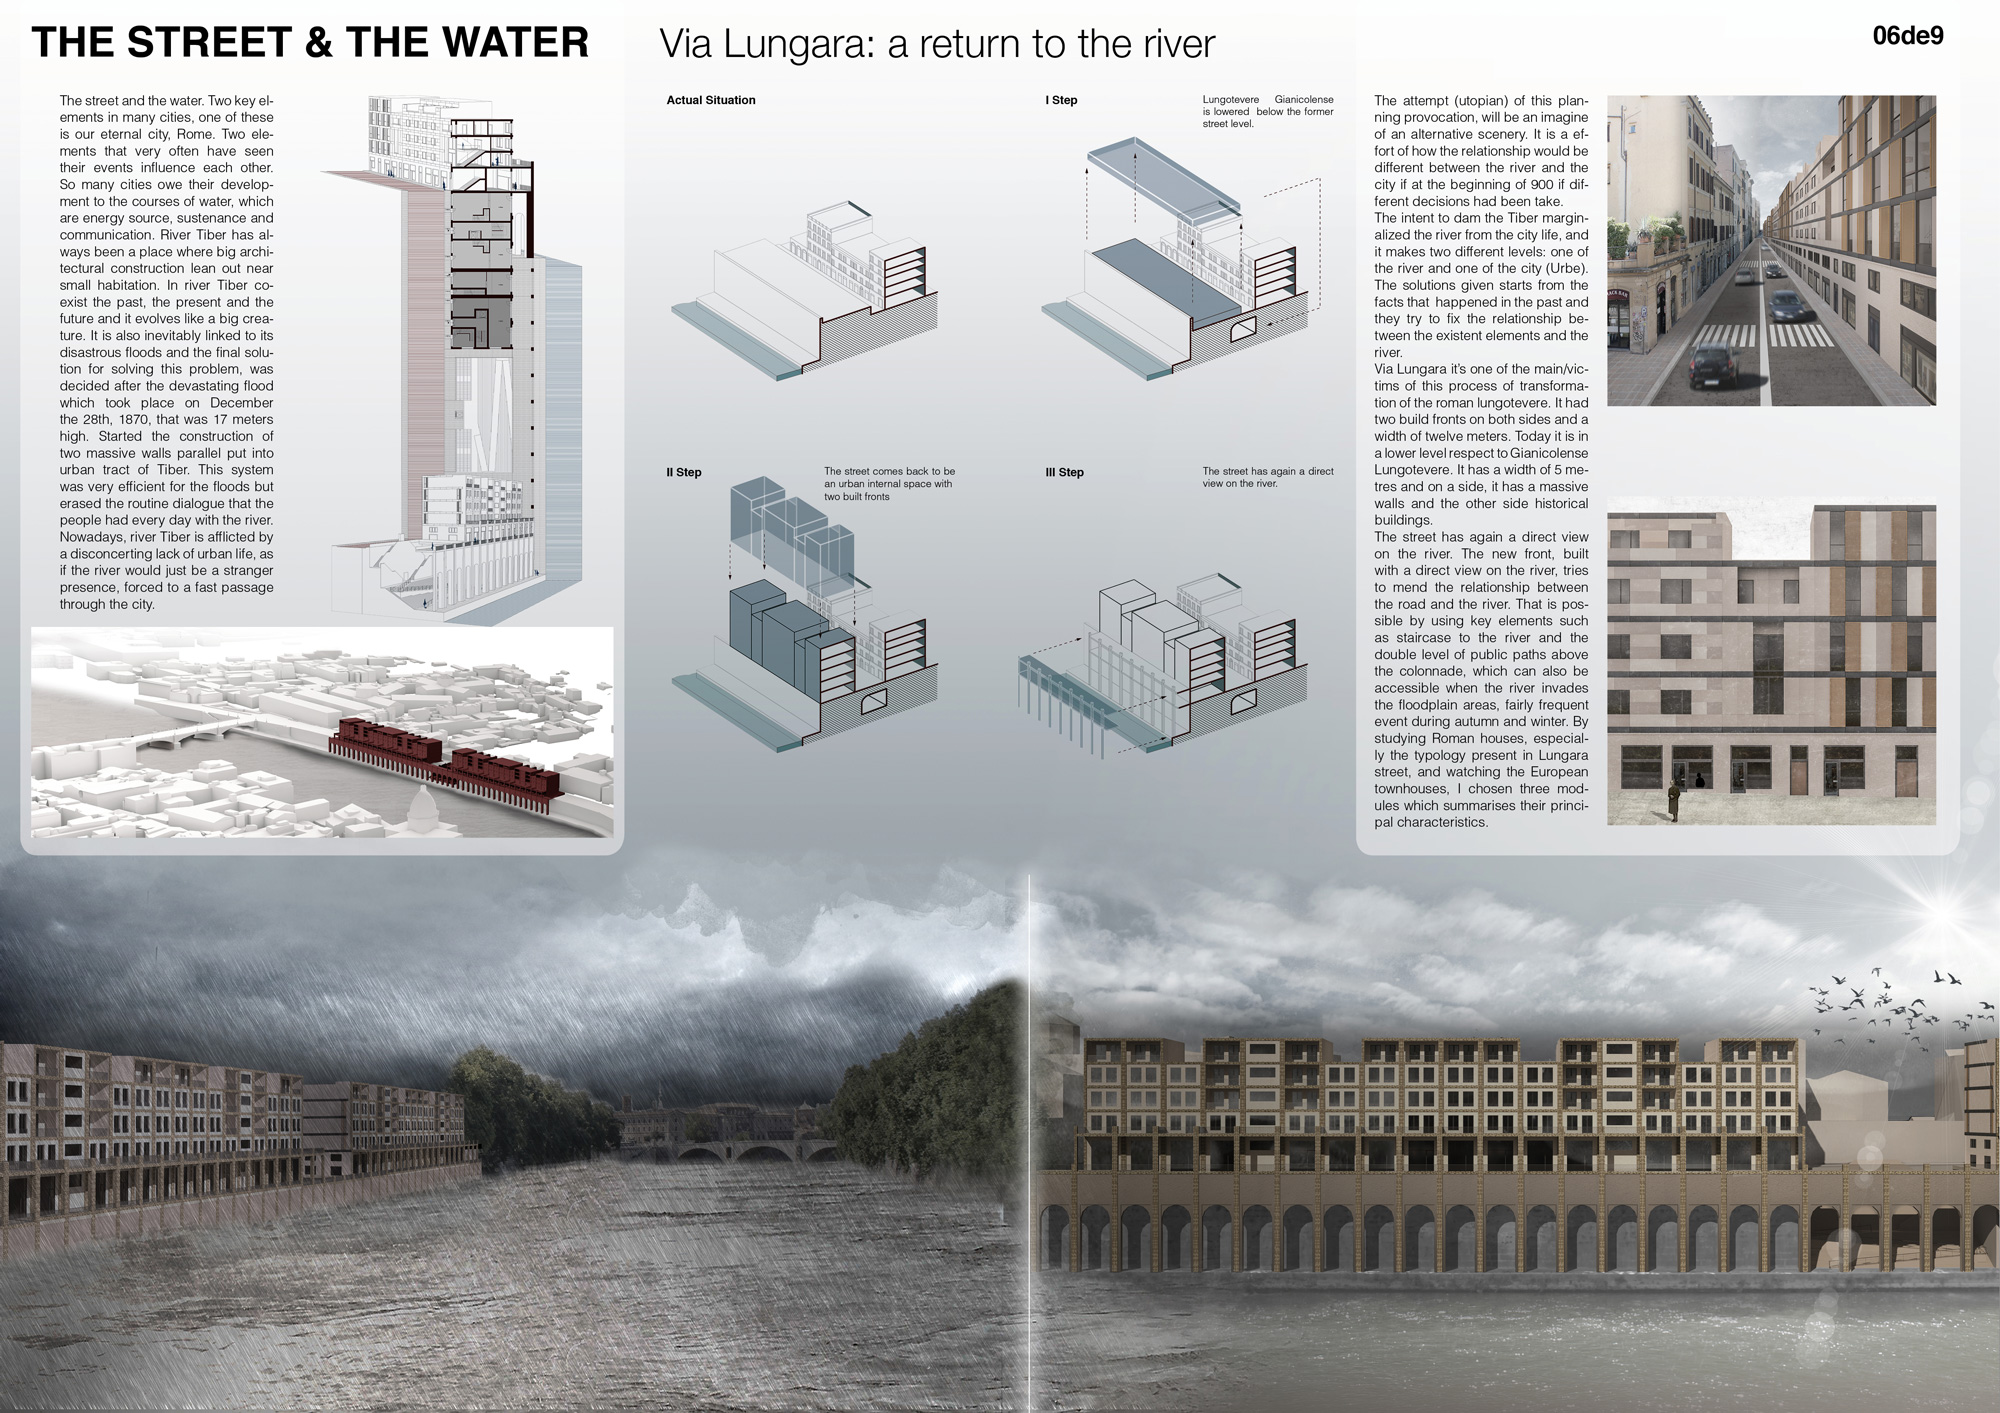 THE STREET AND THE WATER. Via Lungara: a return to the river Board